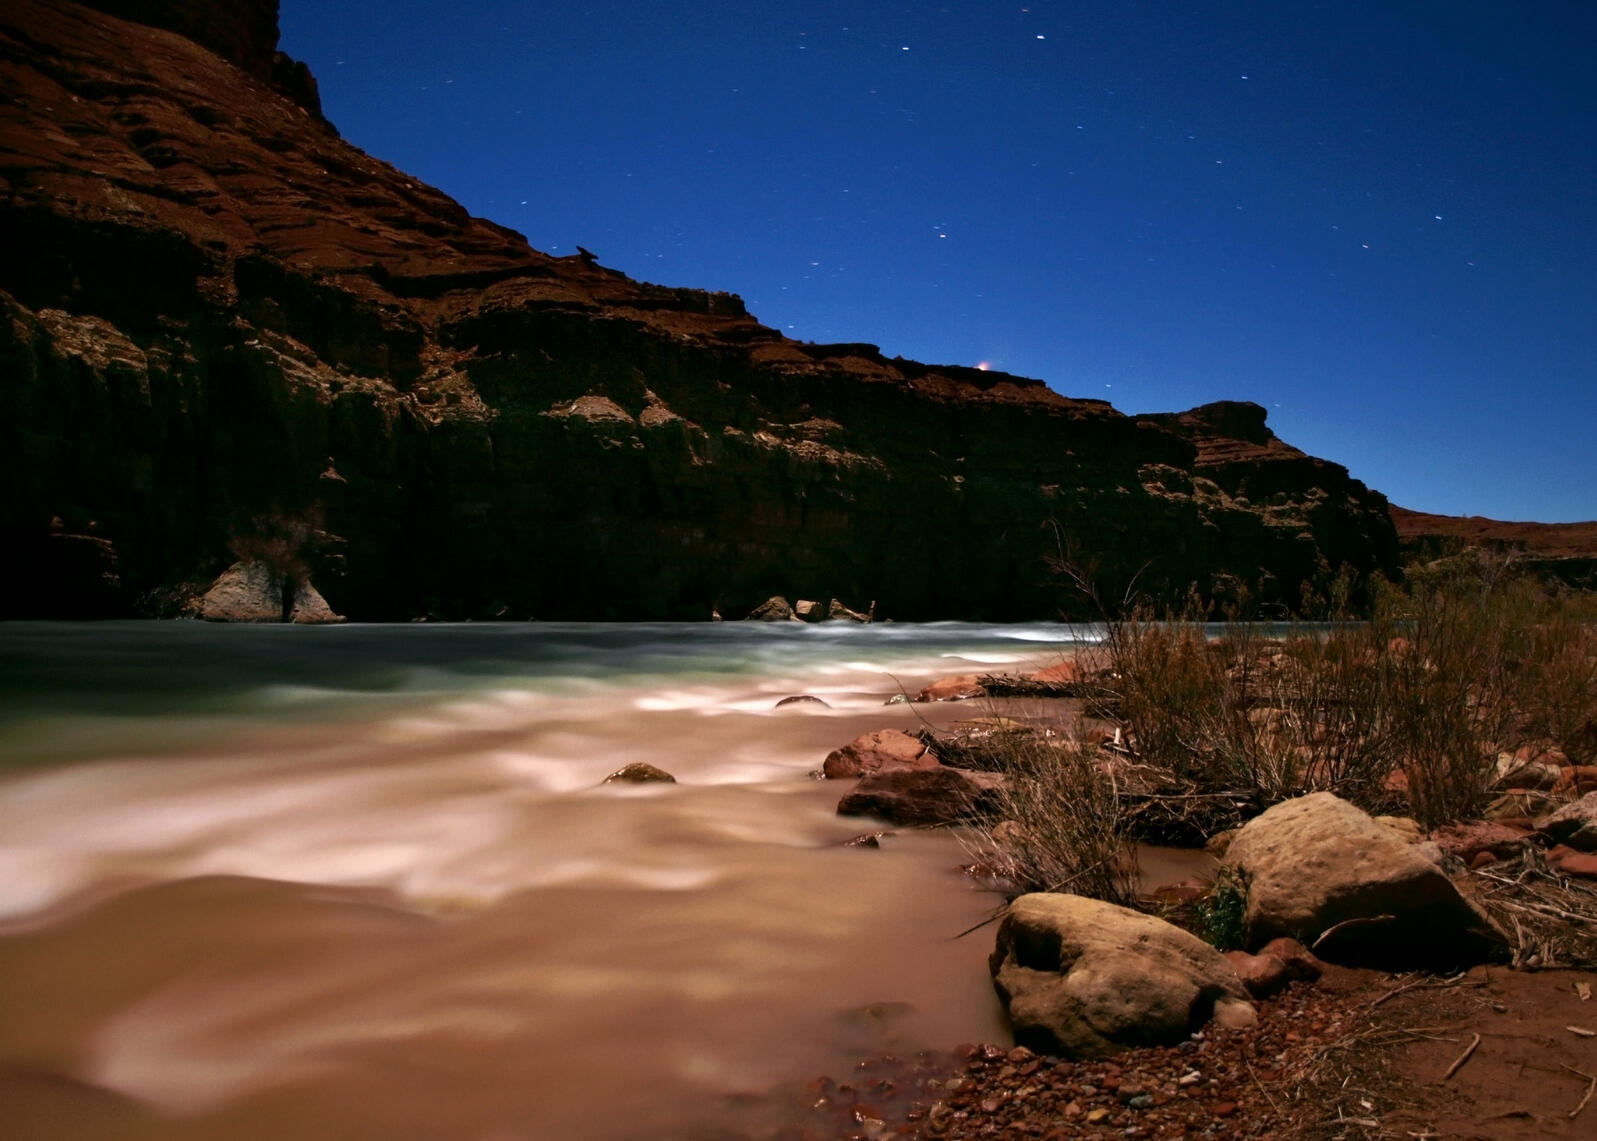 Lee's Ferry in the Grand Canyon. Jonathan Buford/Arizona Wilderness Brewing Company